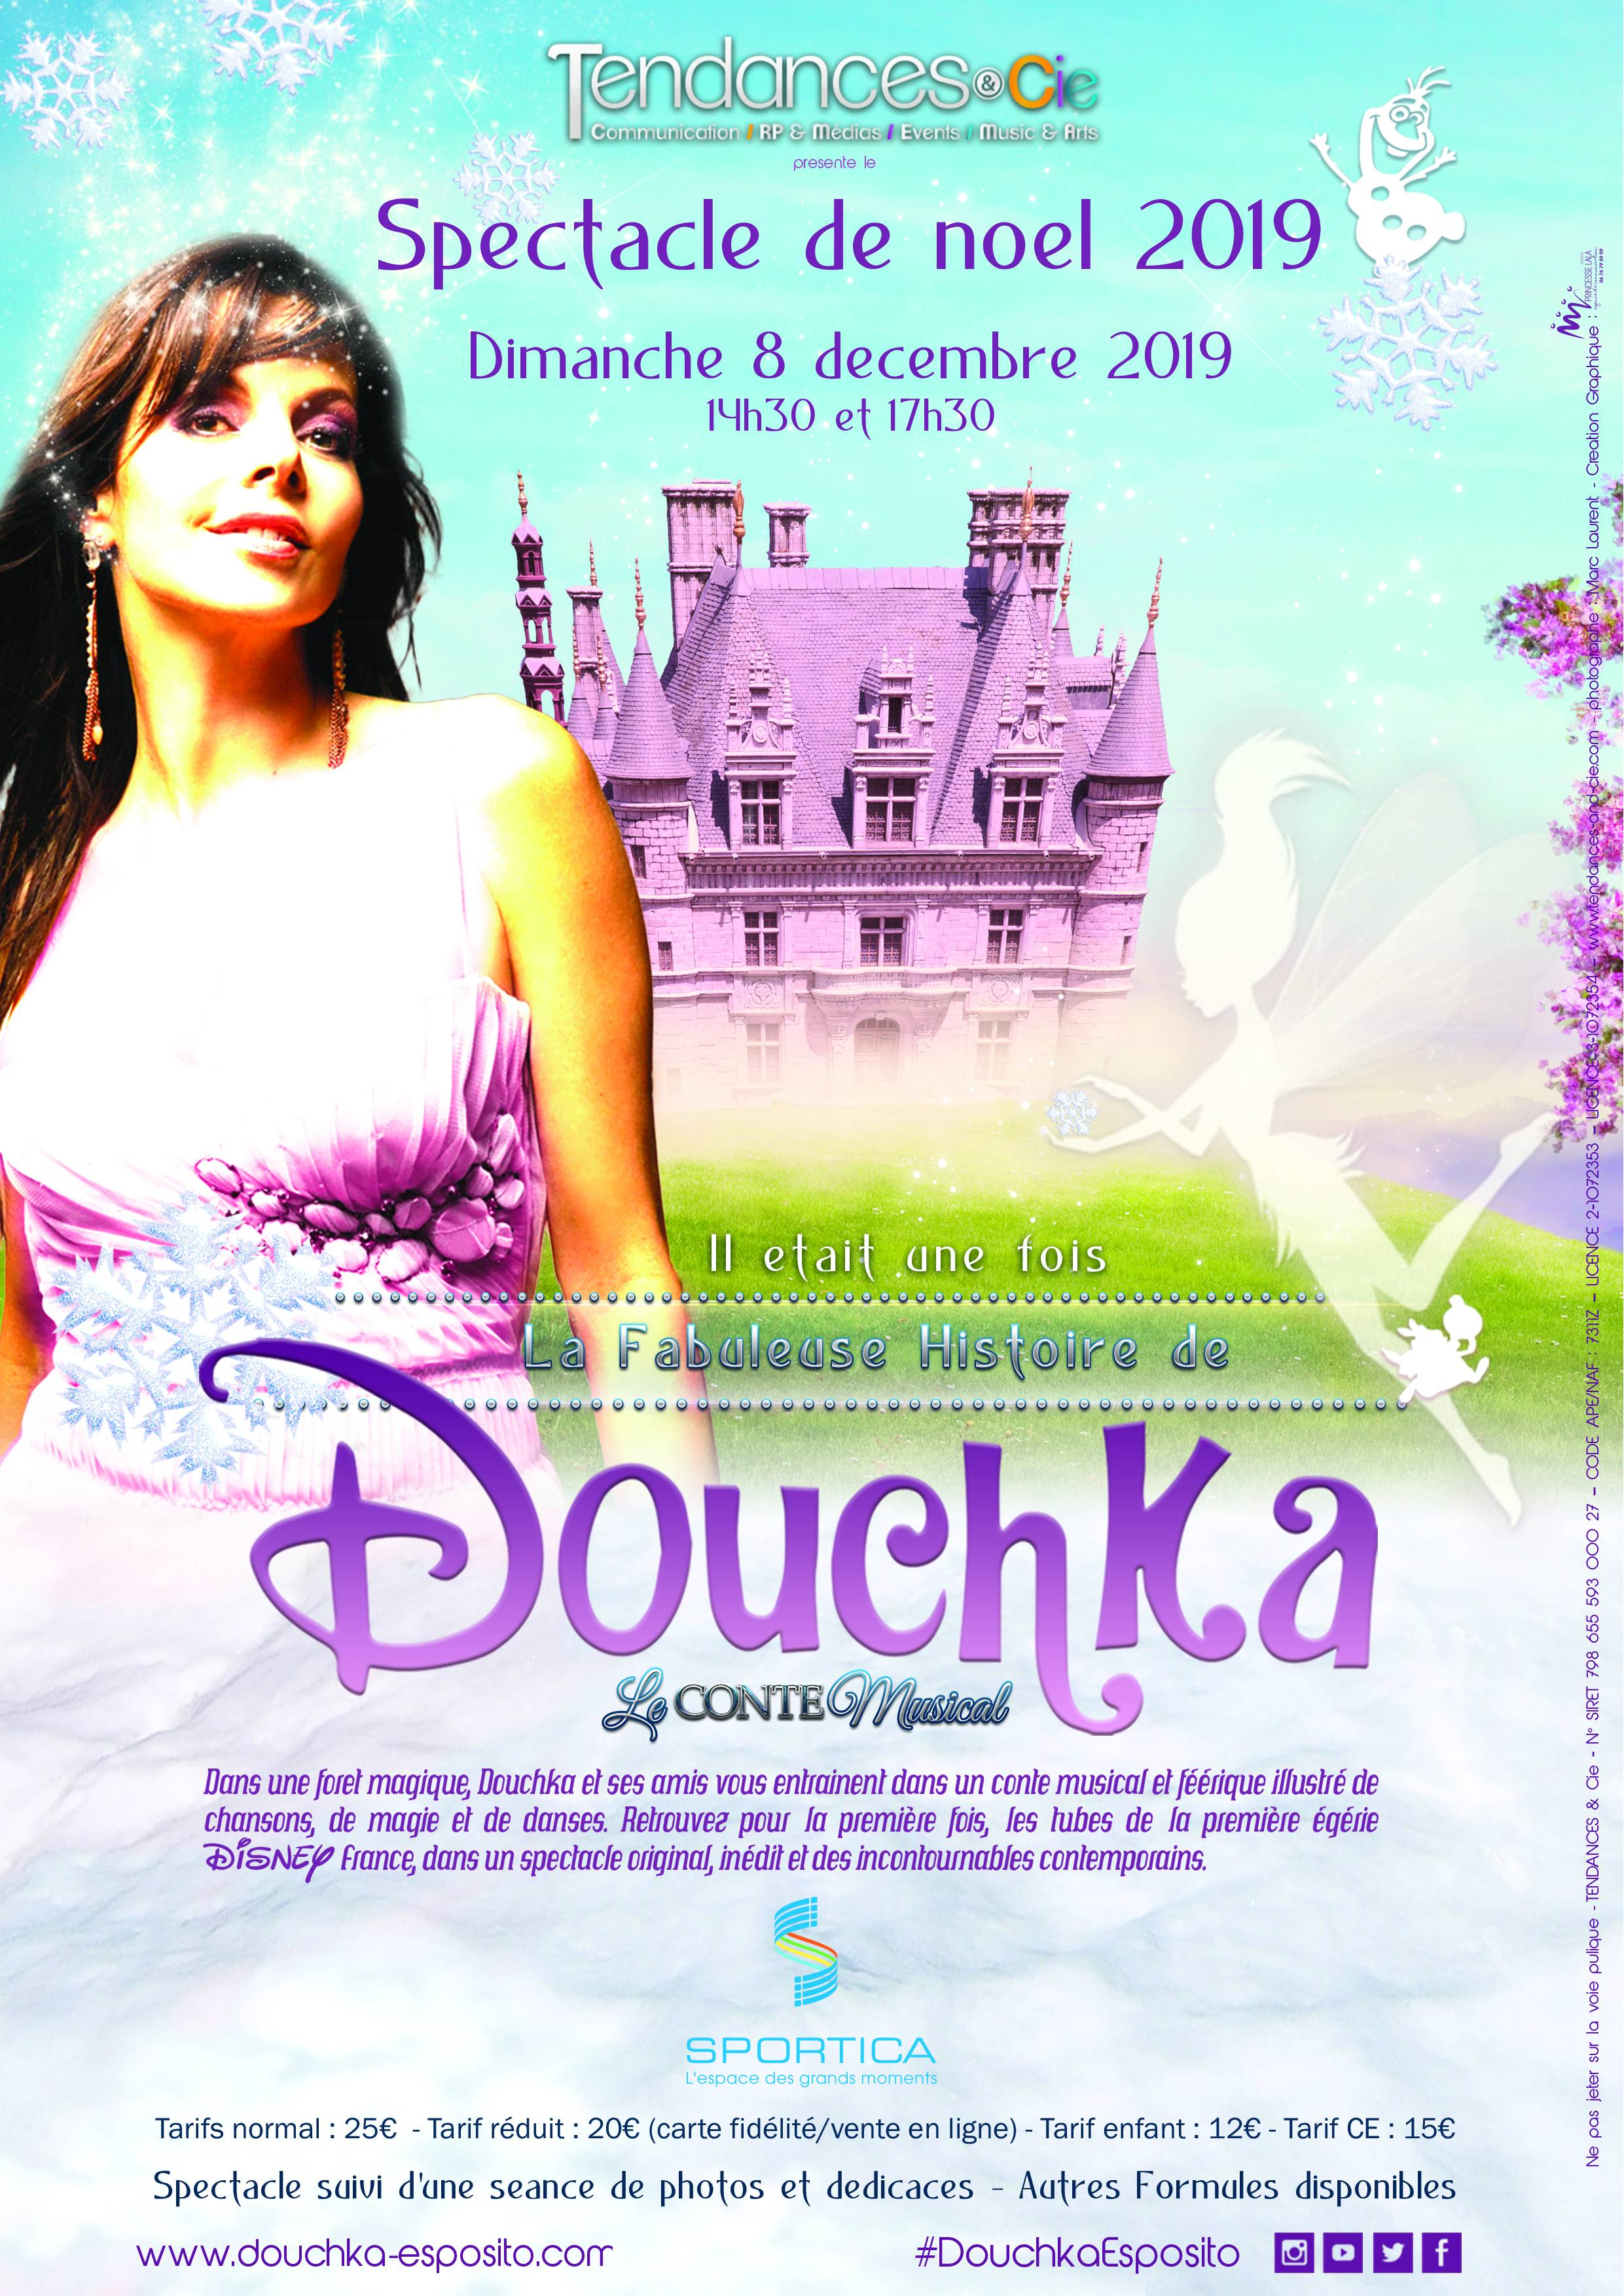 Douchka, 1ère égérie de Disney France - Spectacle de noël